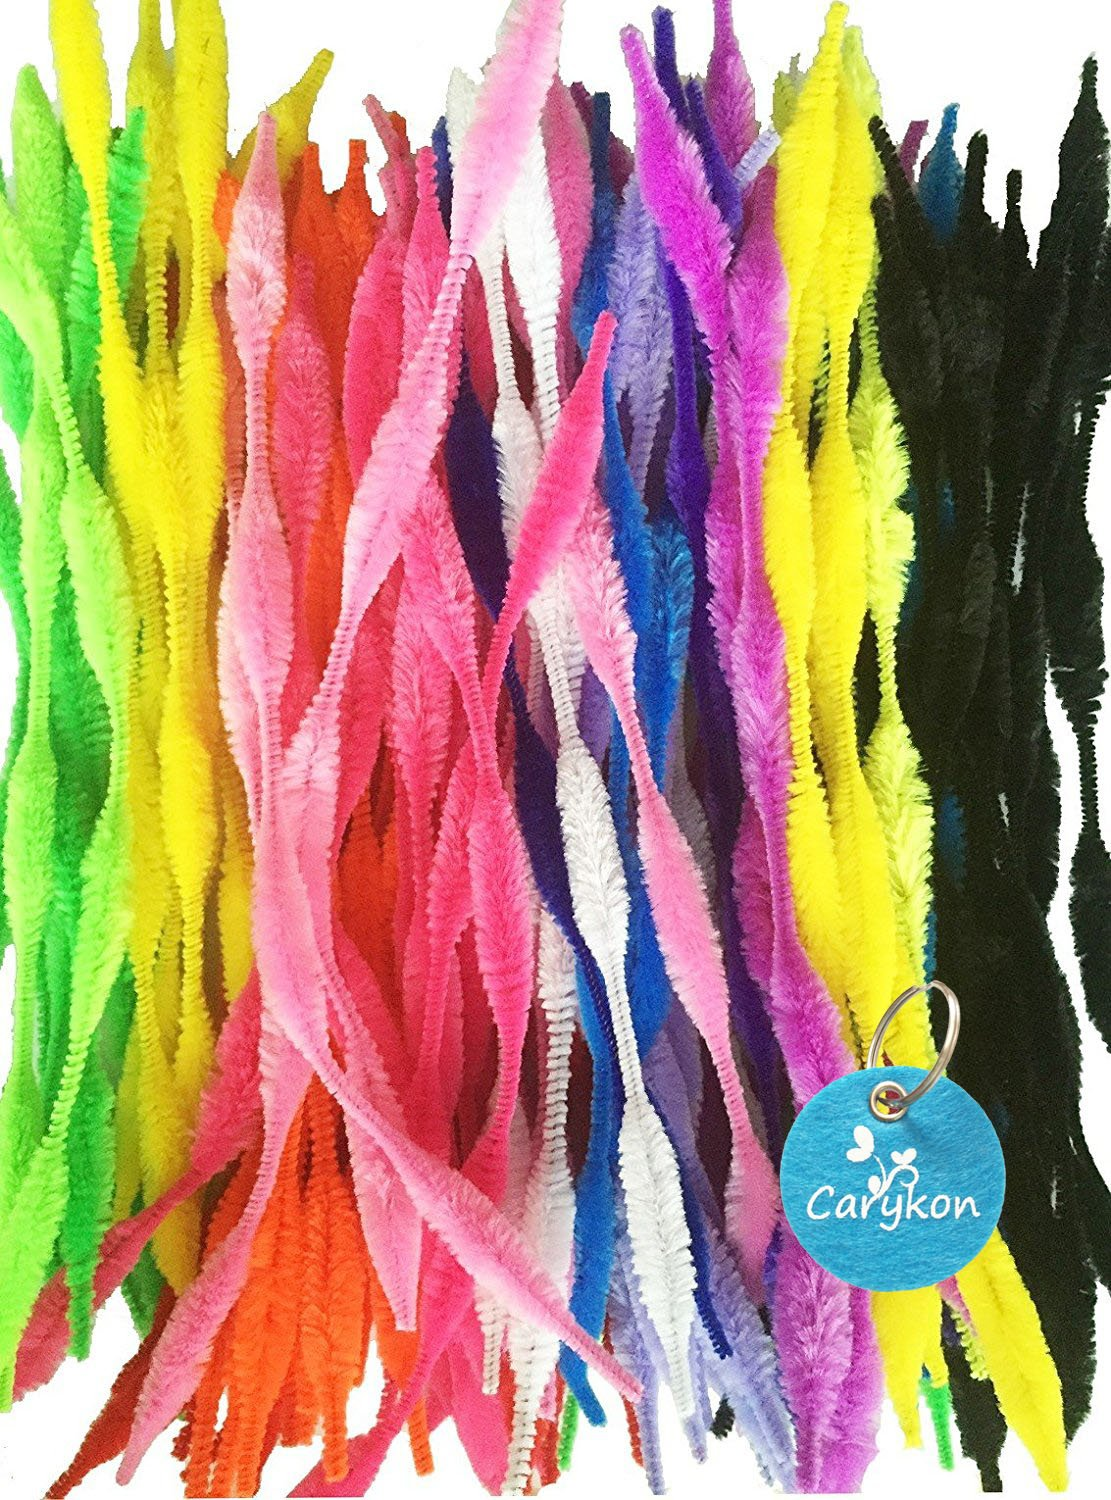 9 Chenille Stems Perfect for Your Familys Decorative and Creative Needs! Set of 500 Colorful Striped Fuzzy Pipe Cleaners 500 Pipe Cleaners Perfect for Any Arts and Crafts!